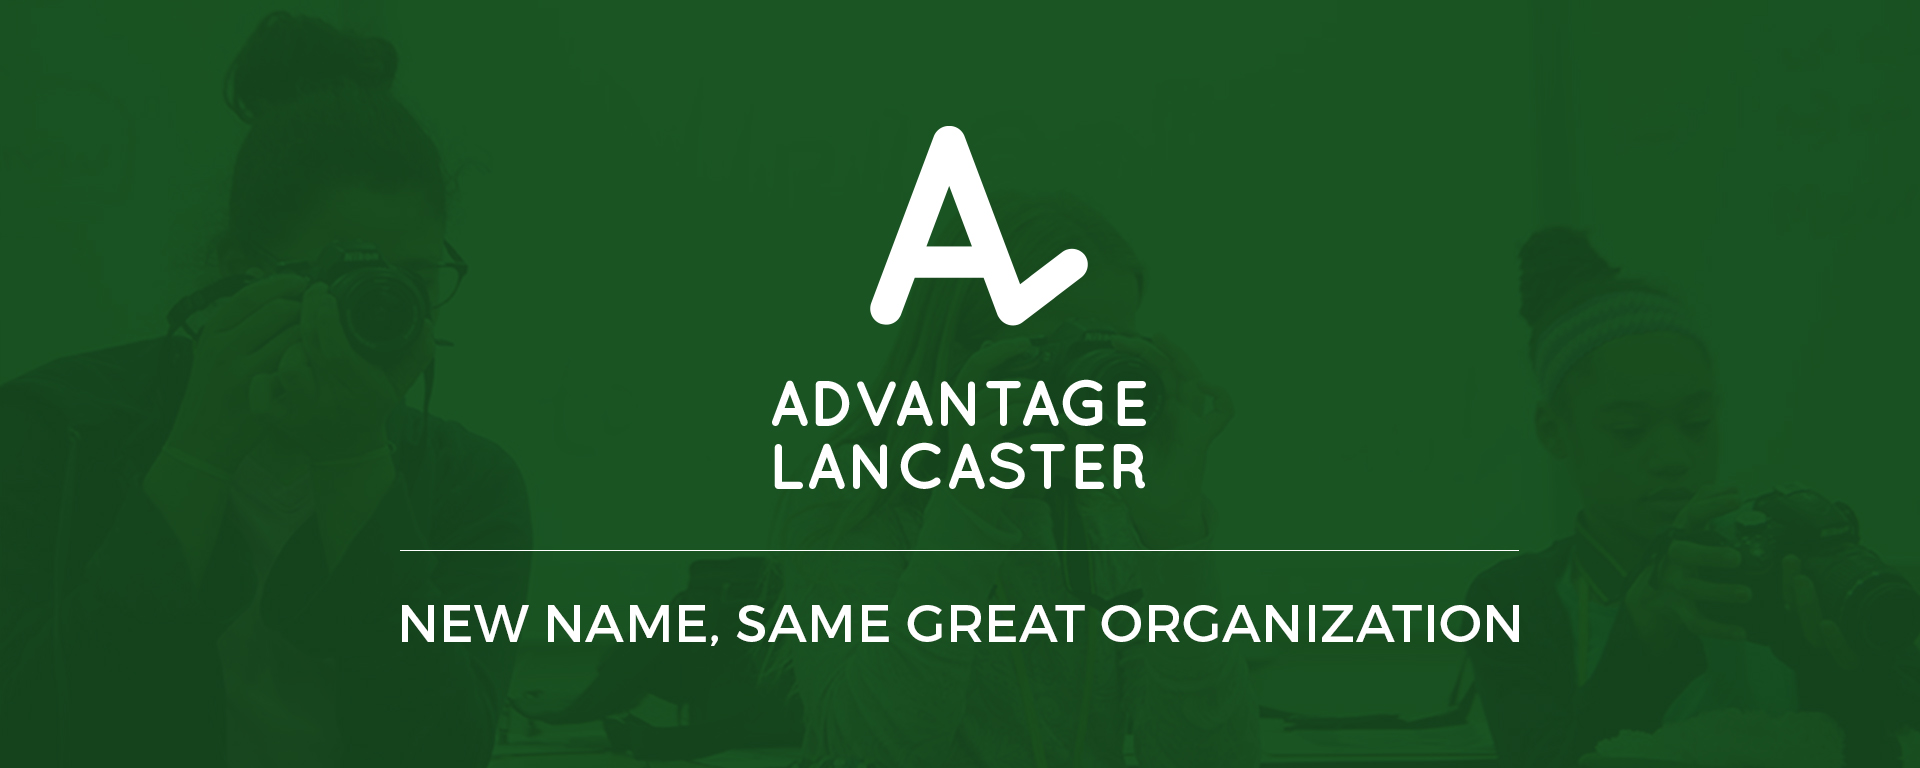 Introducing Advantage Lancaster